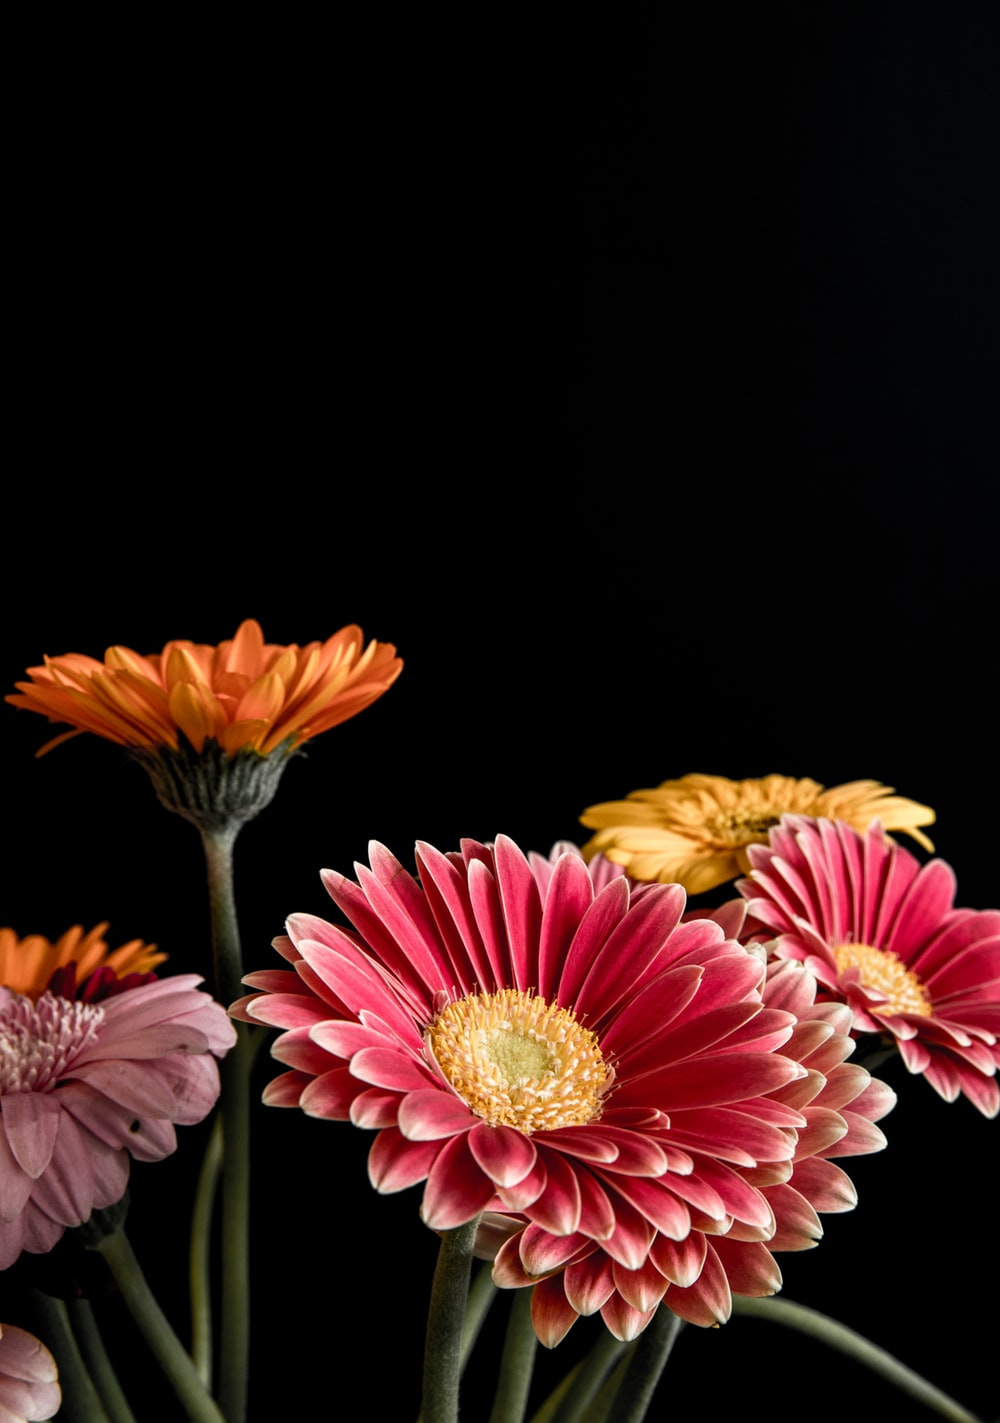 pink and yellow flowers on black background